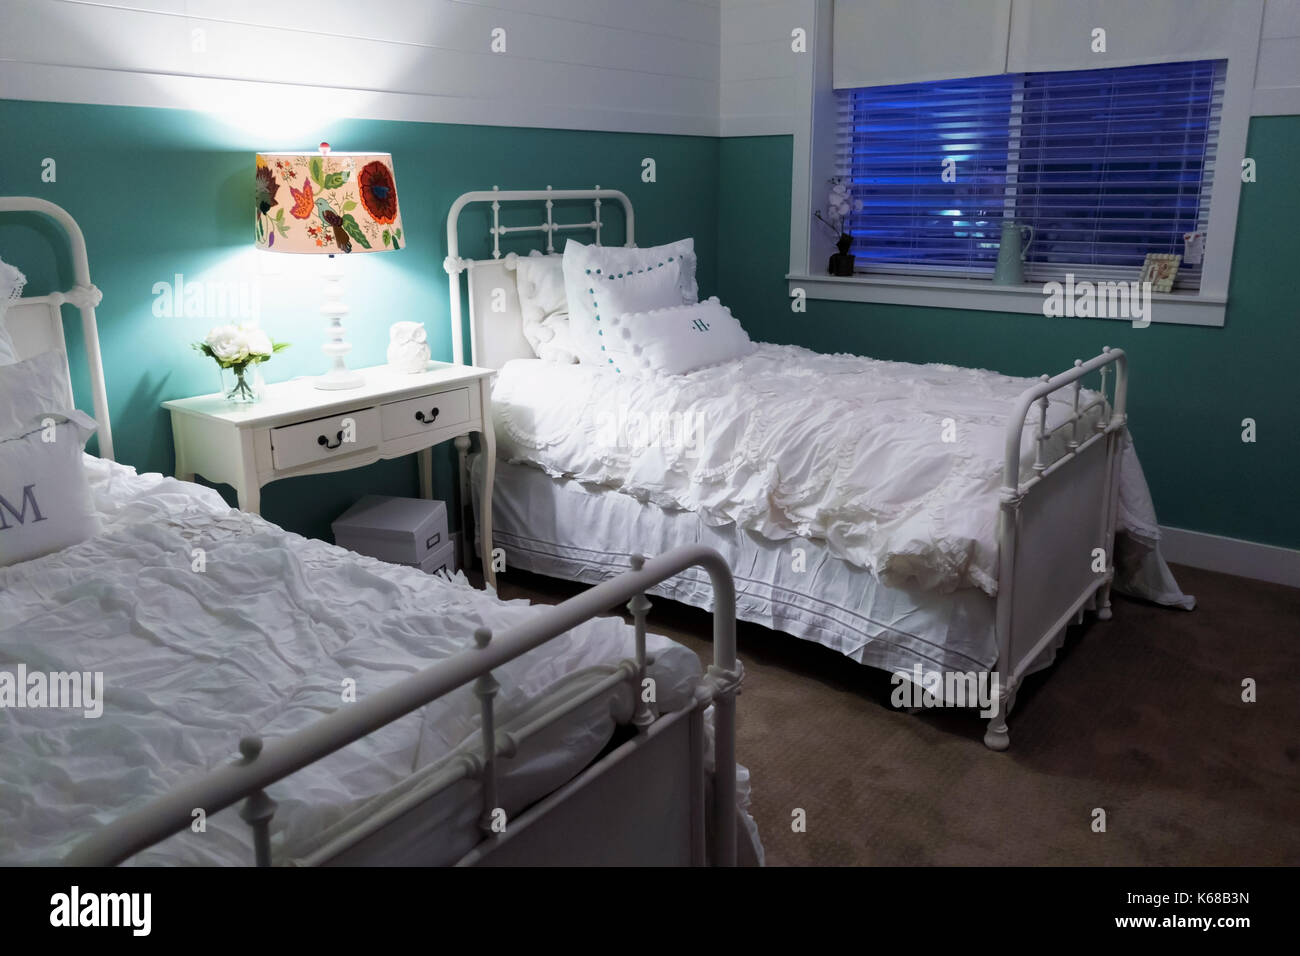 Picture of: White Metal Bed High Resolution Stock Photography And Images Alamy